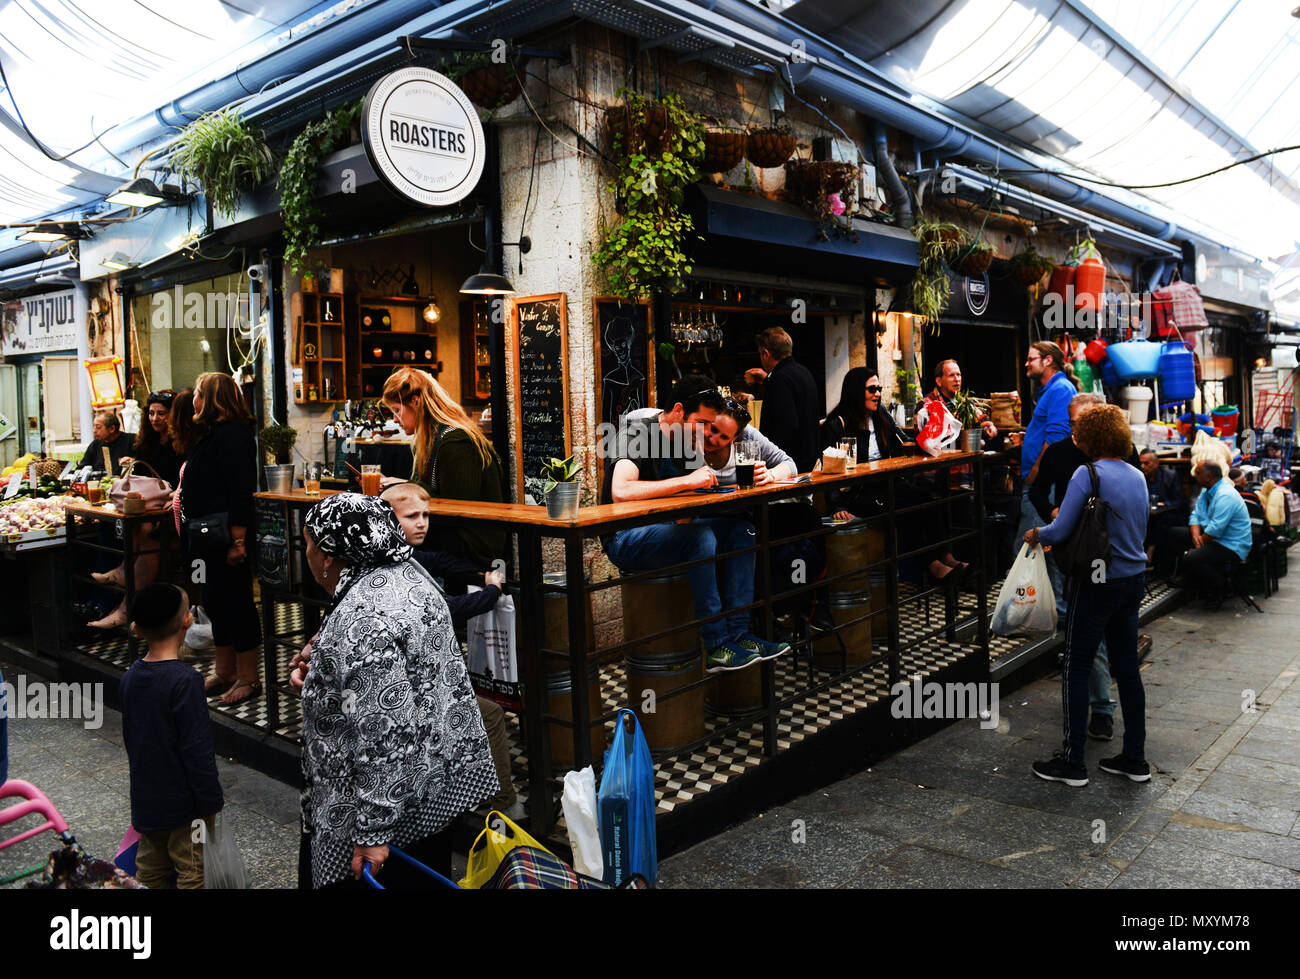 Coffee Roasters cafe in the vibrant Machane Yehuda market. - Stock Image